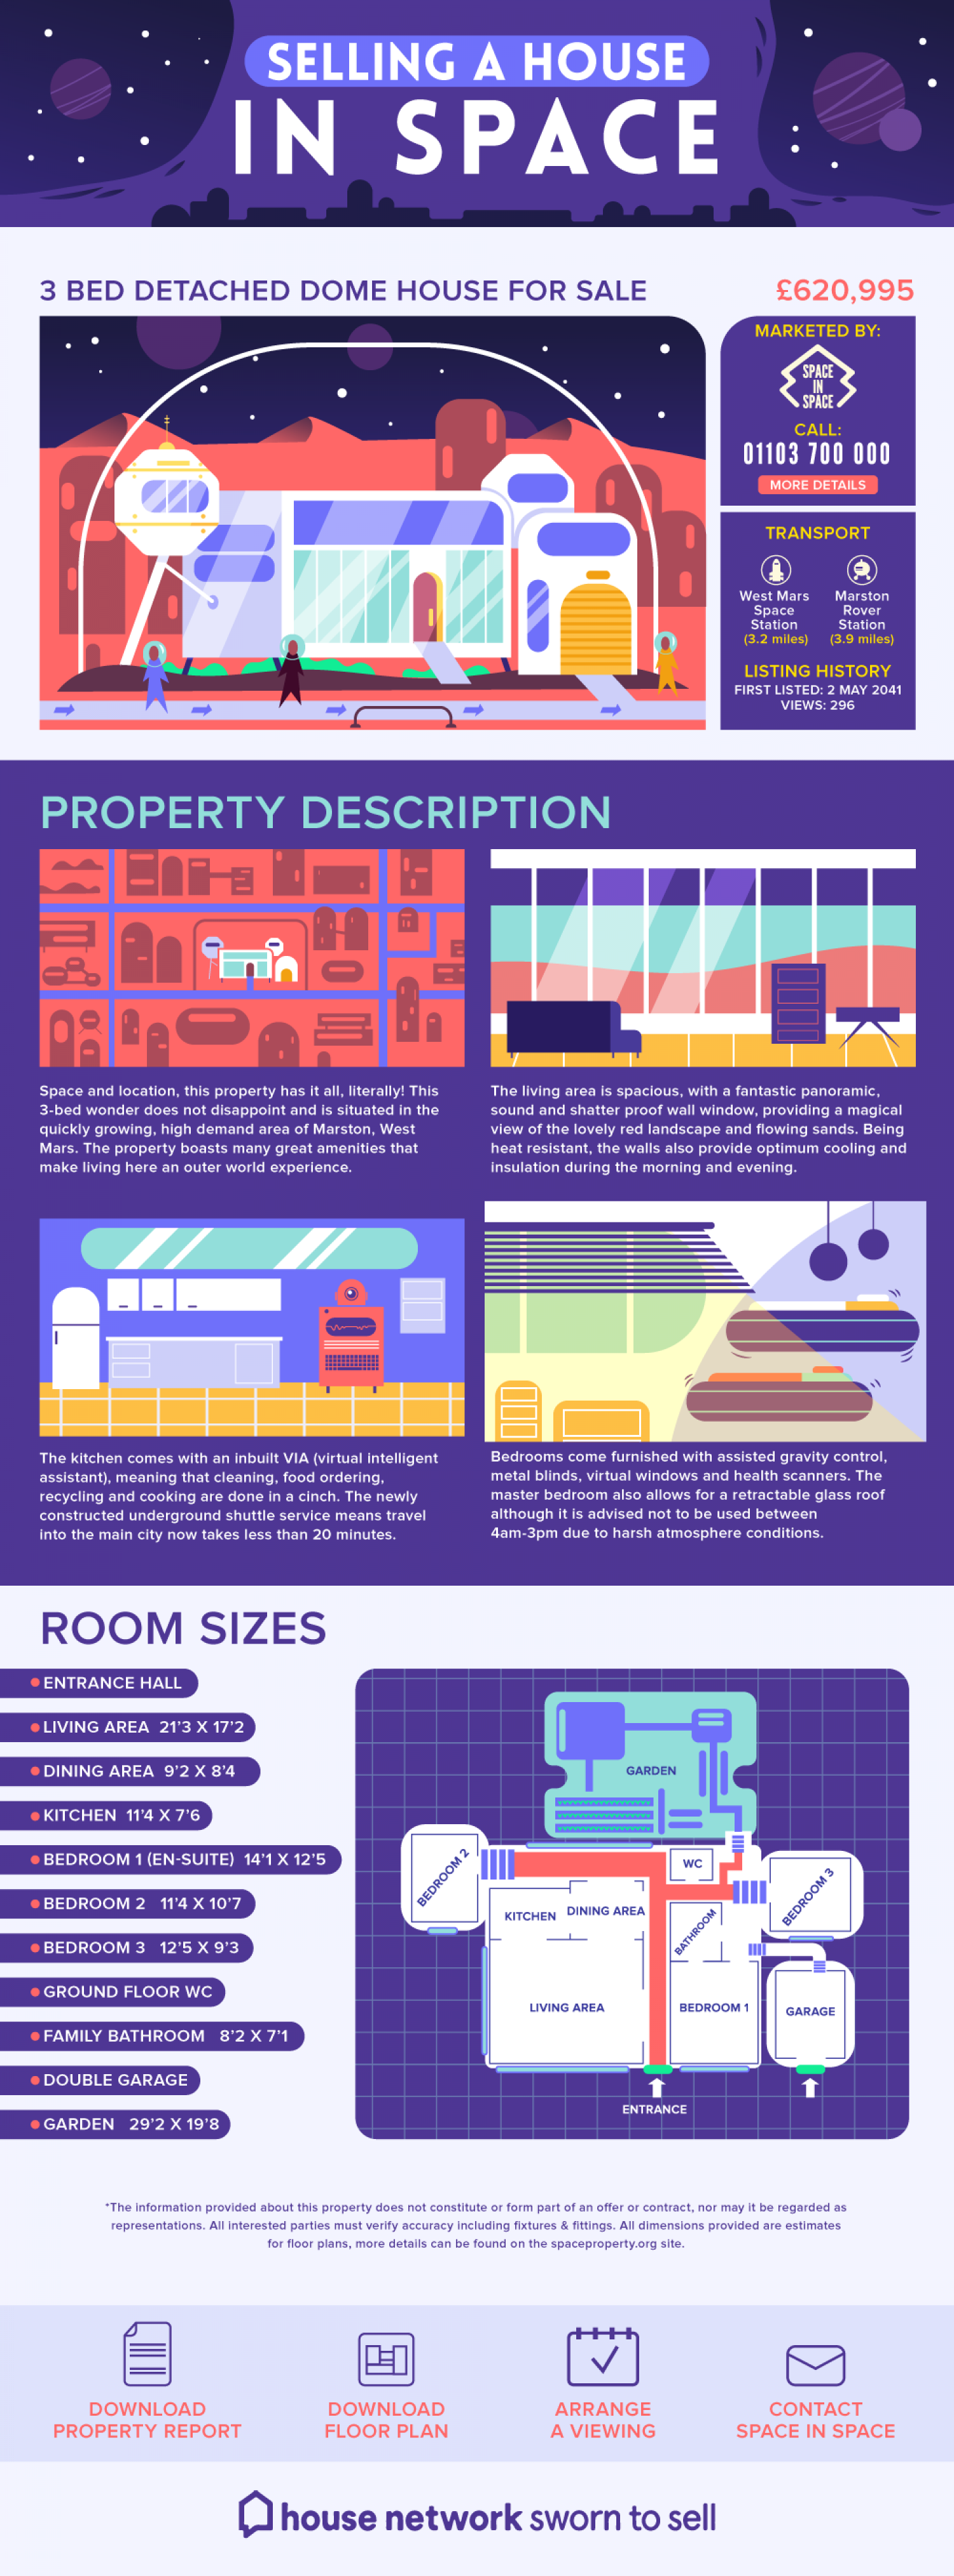 Selling a House in Space Infographic